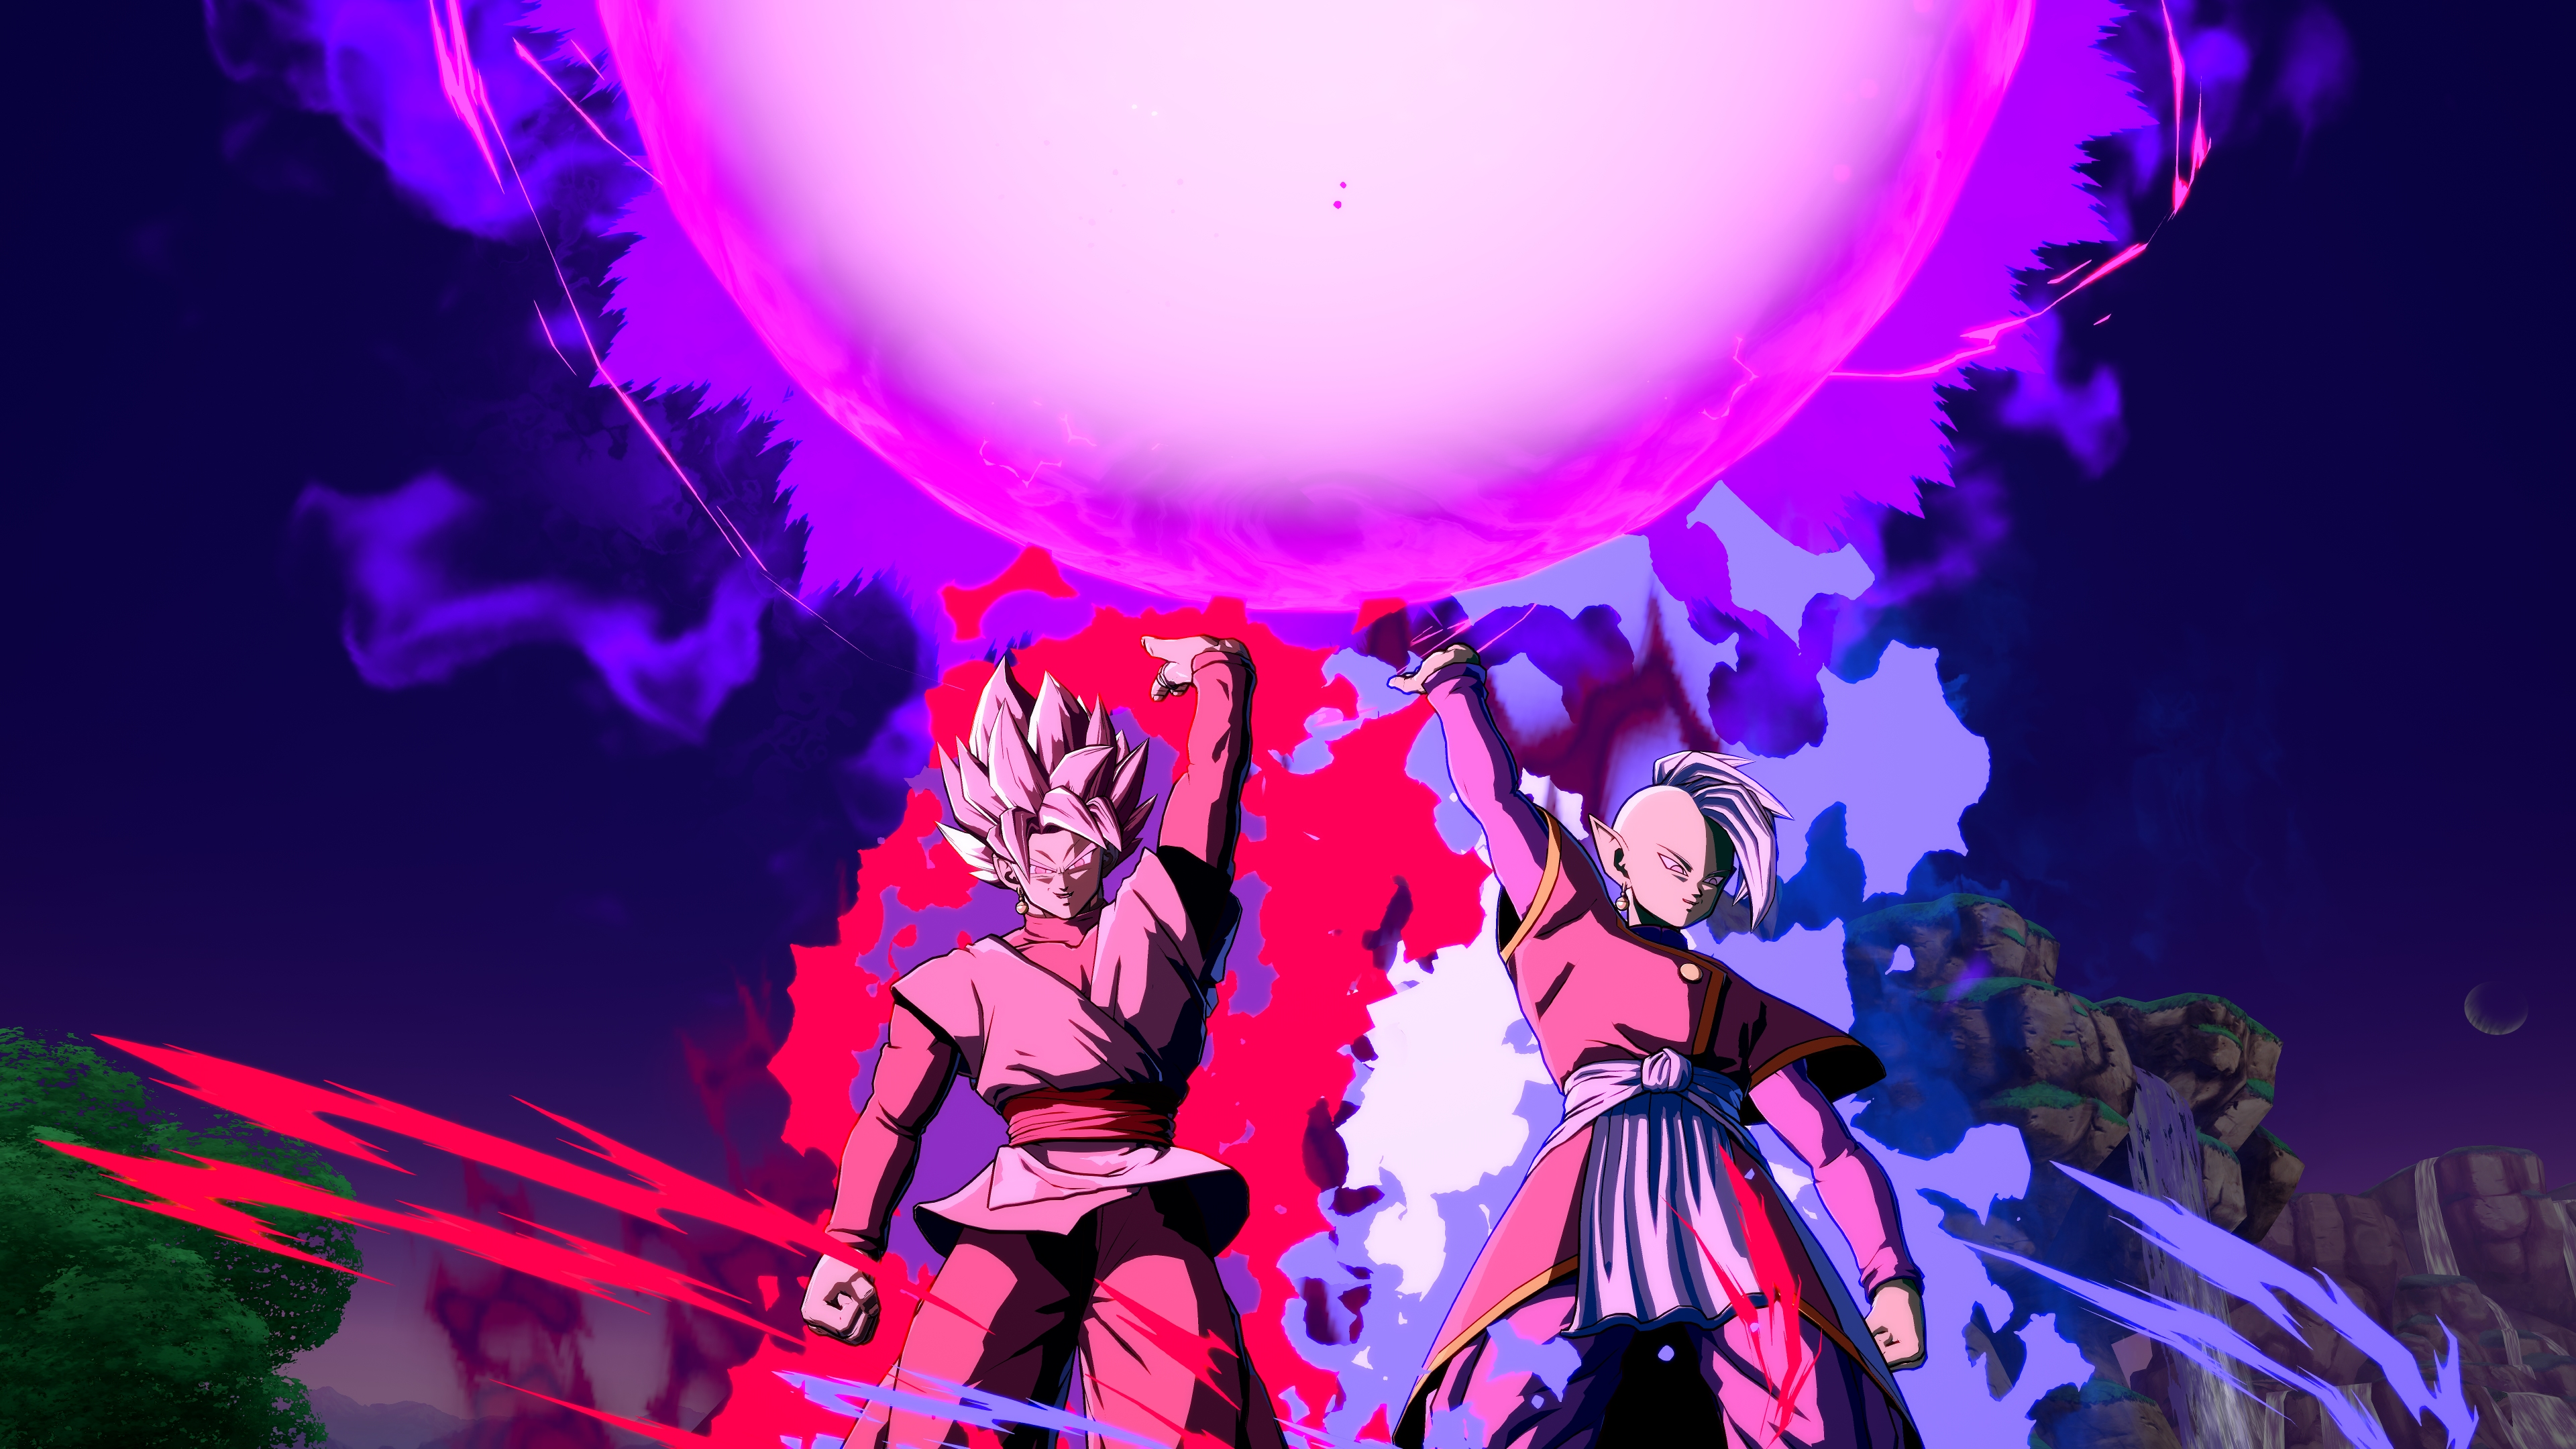 Black Goku Dragon Ball Fighterz Hd Games 4k Wallpapers Images